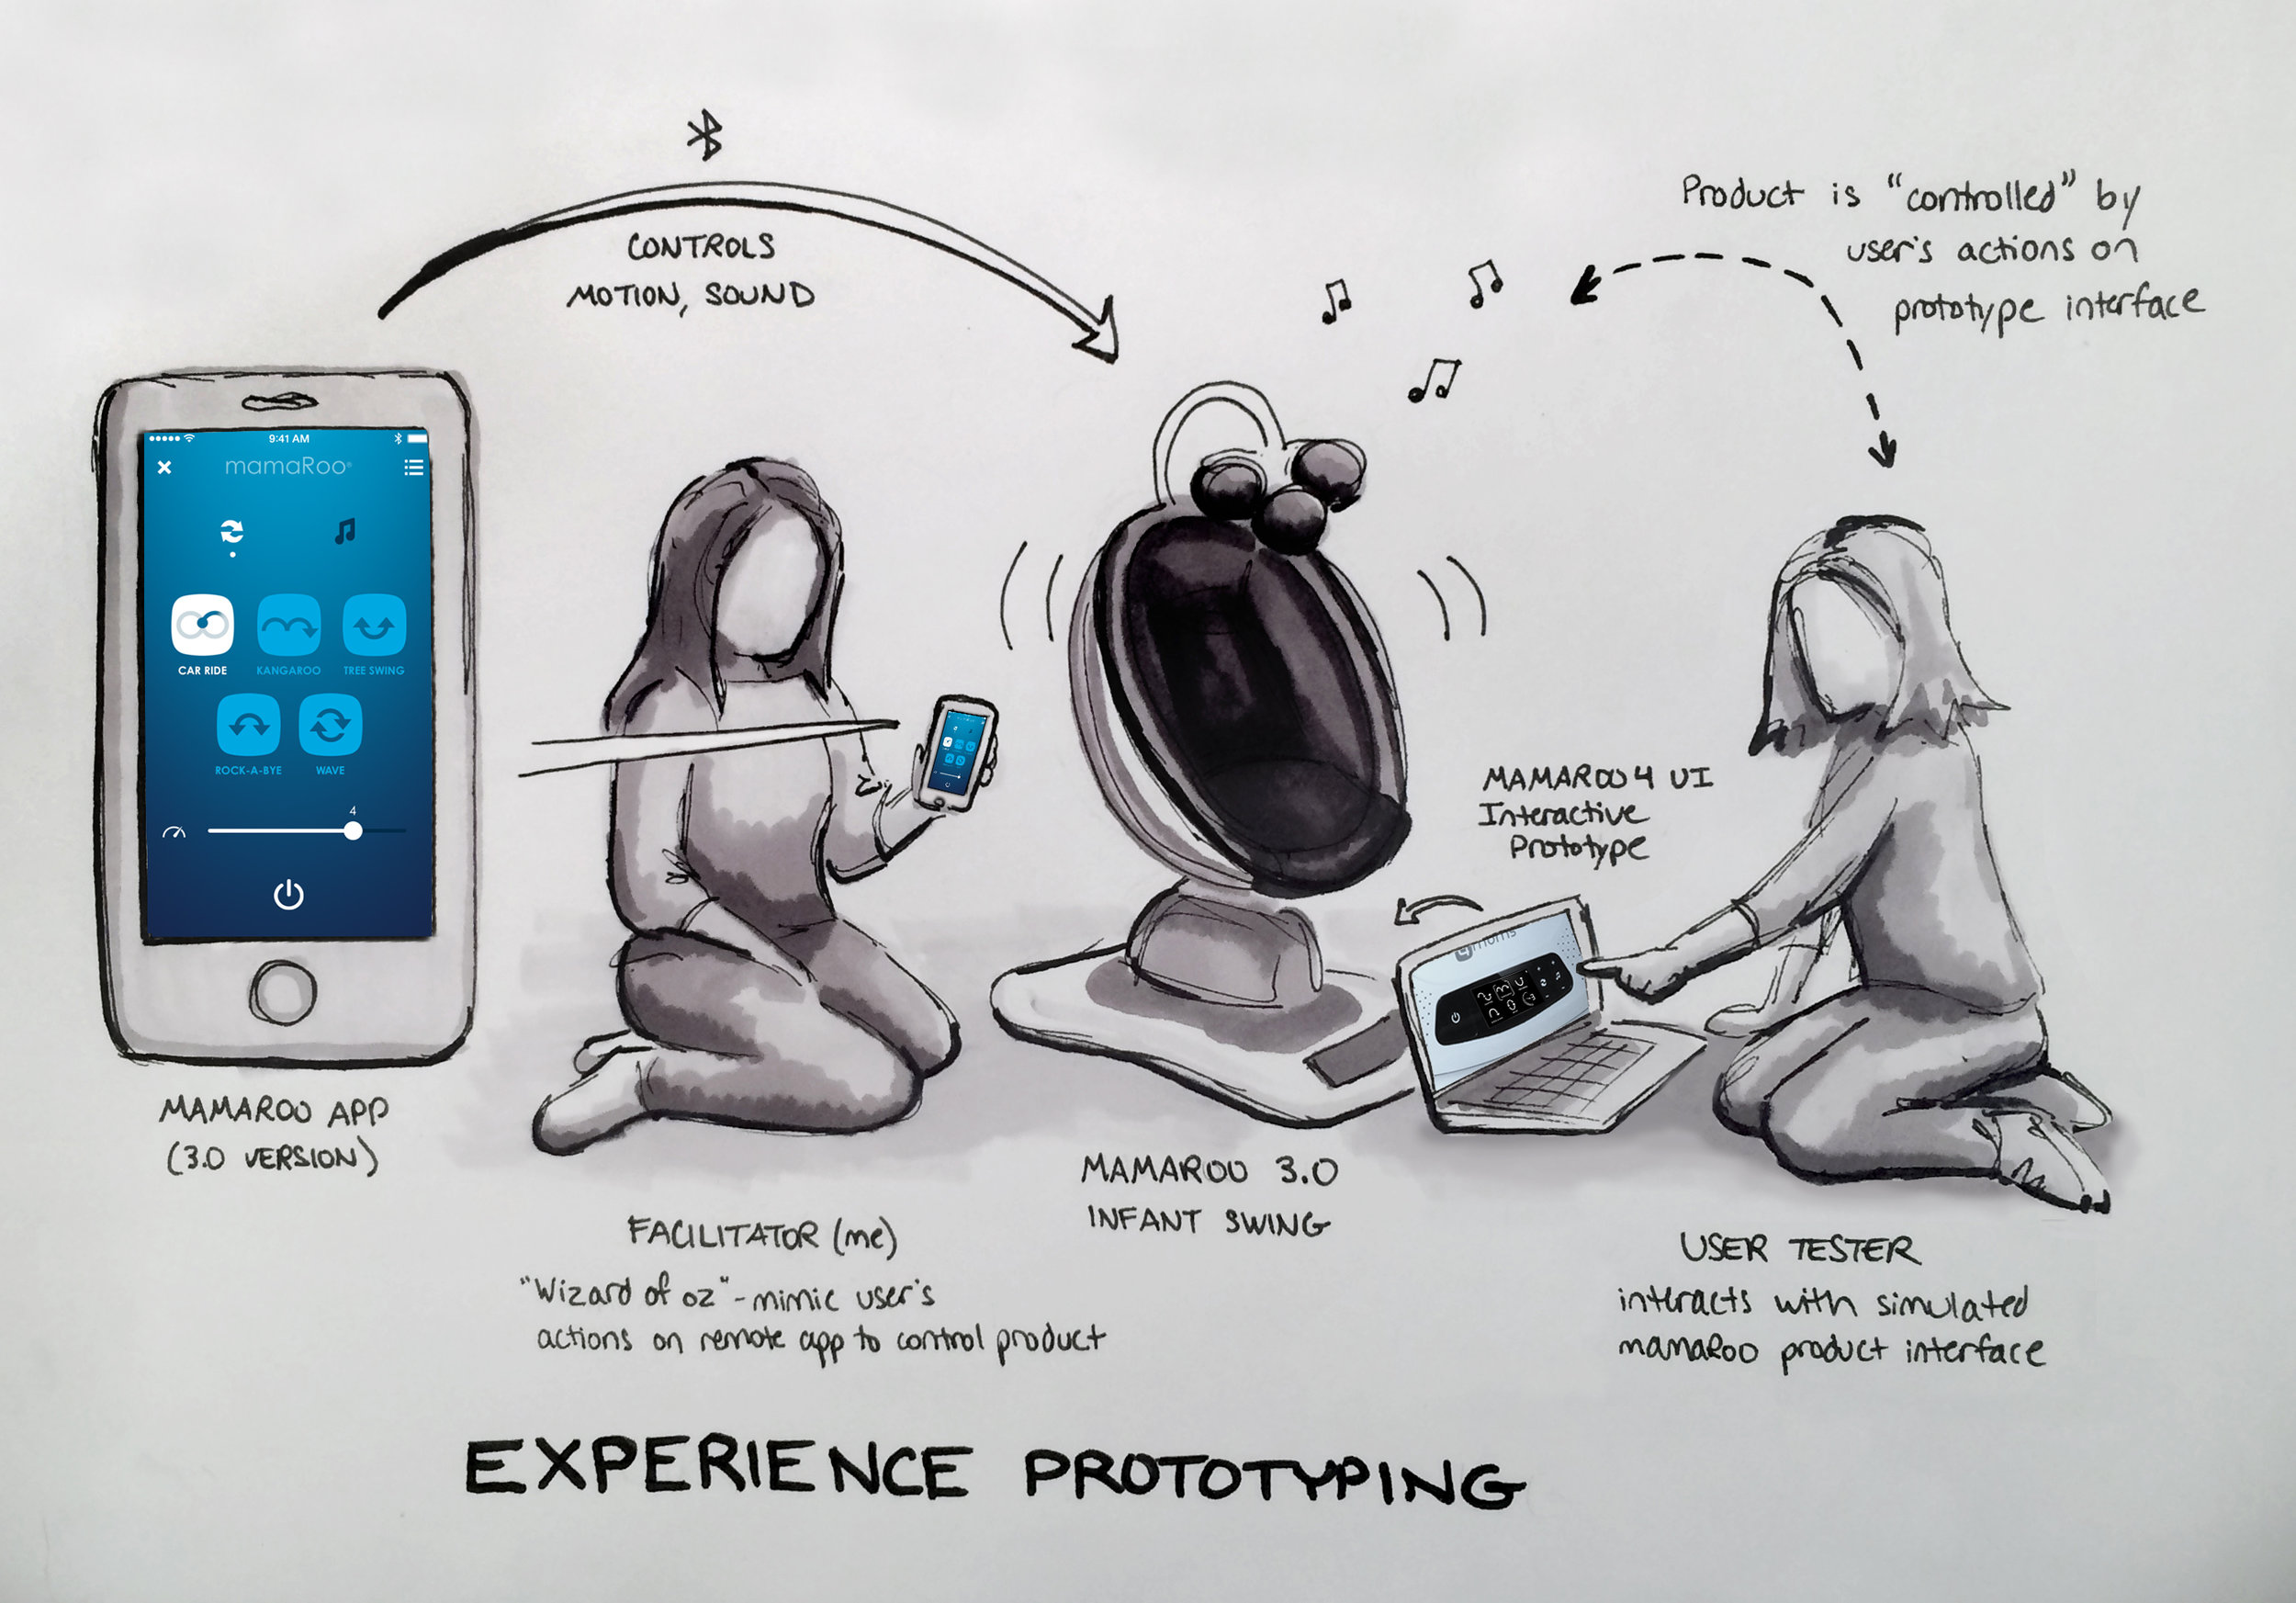 Experience prototyping the new mamaRoo 4.0 interface. Users interacted with a prototype of the UI, while I mimicked their actions on the mamaRoo app remote, wizard-of-oz style.